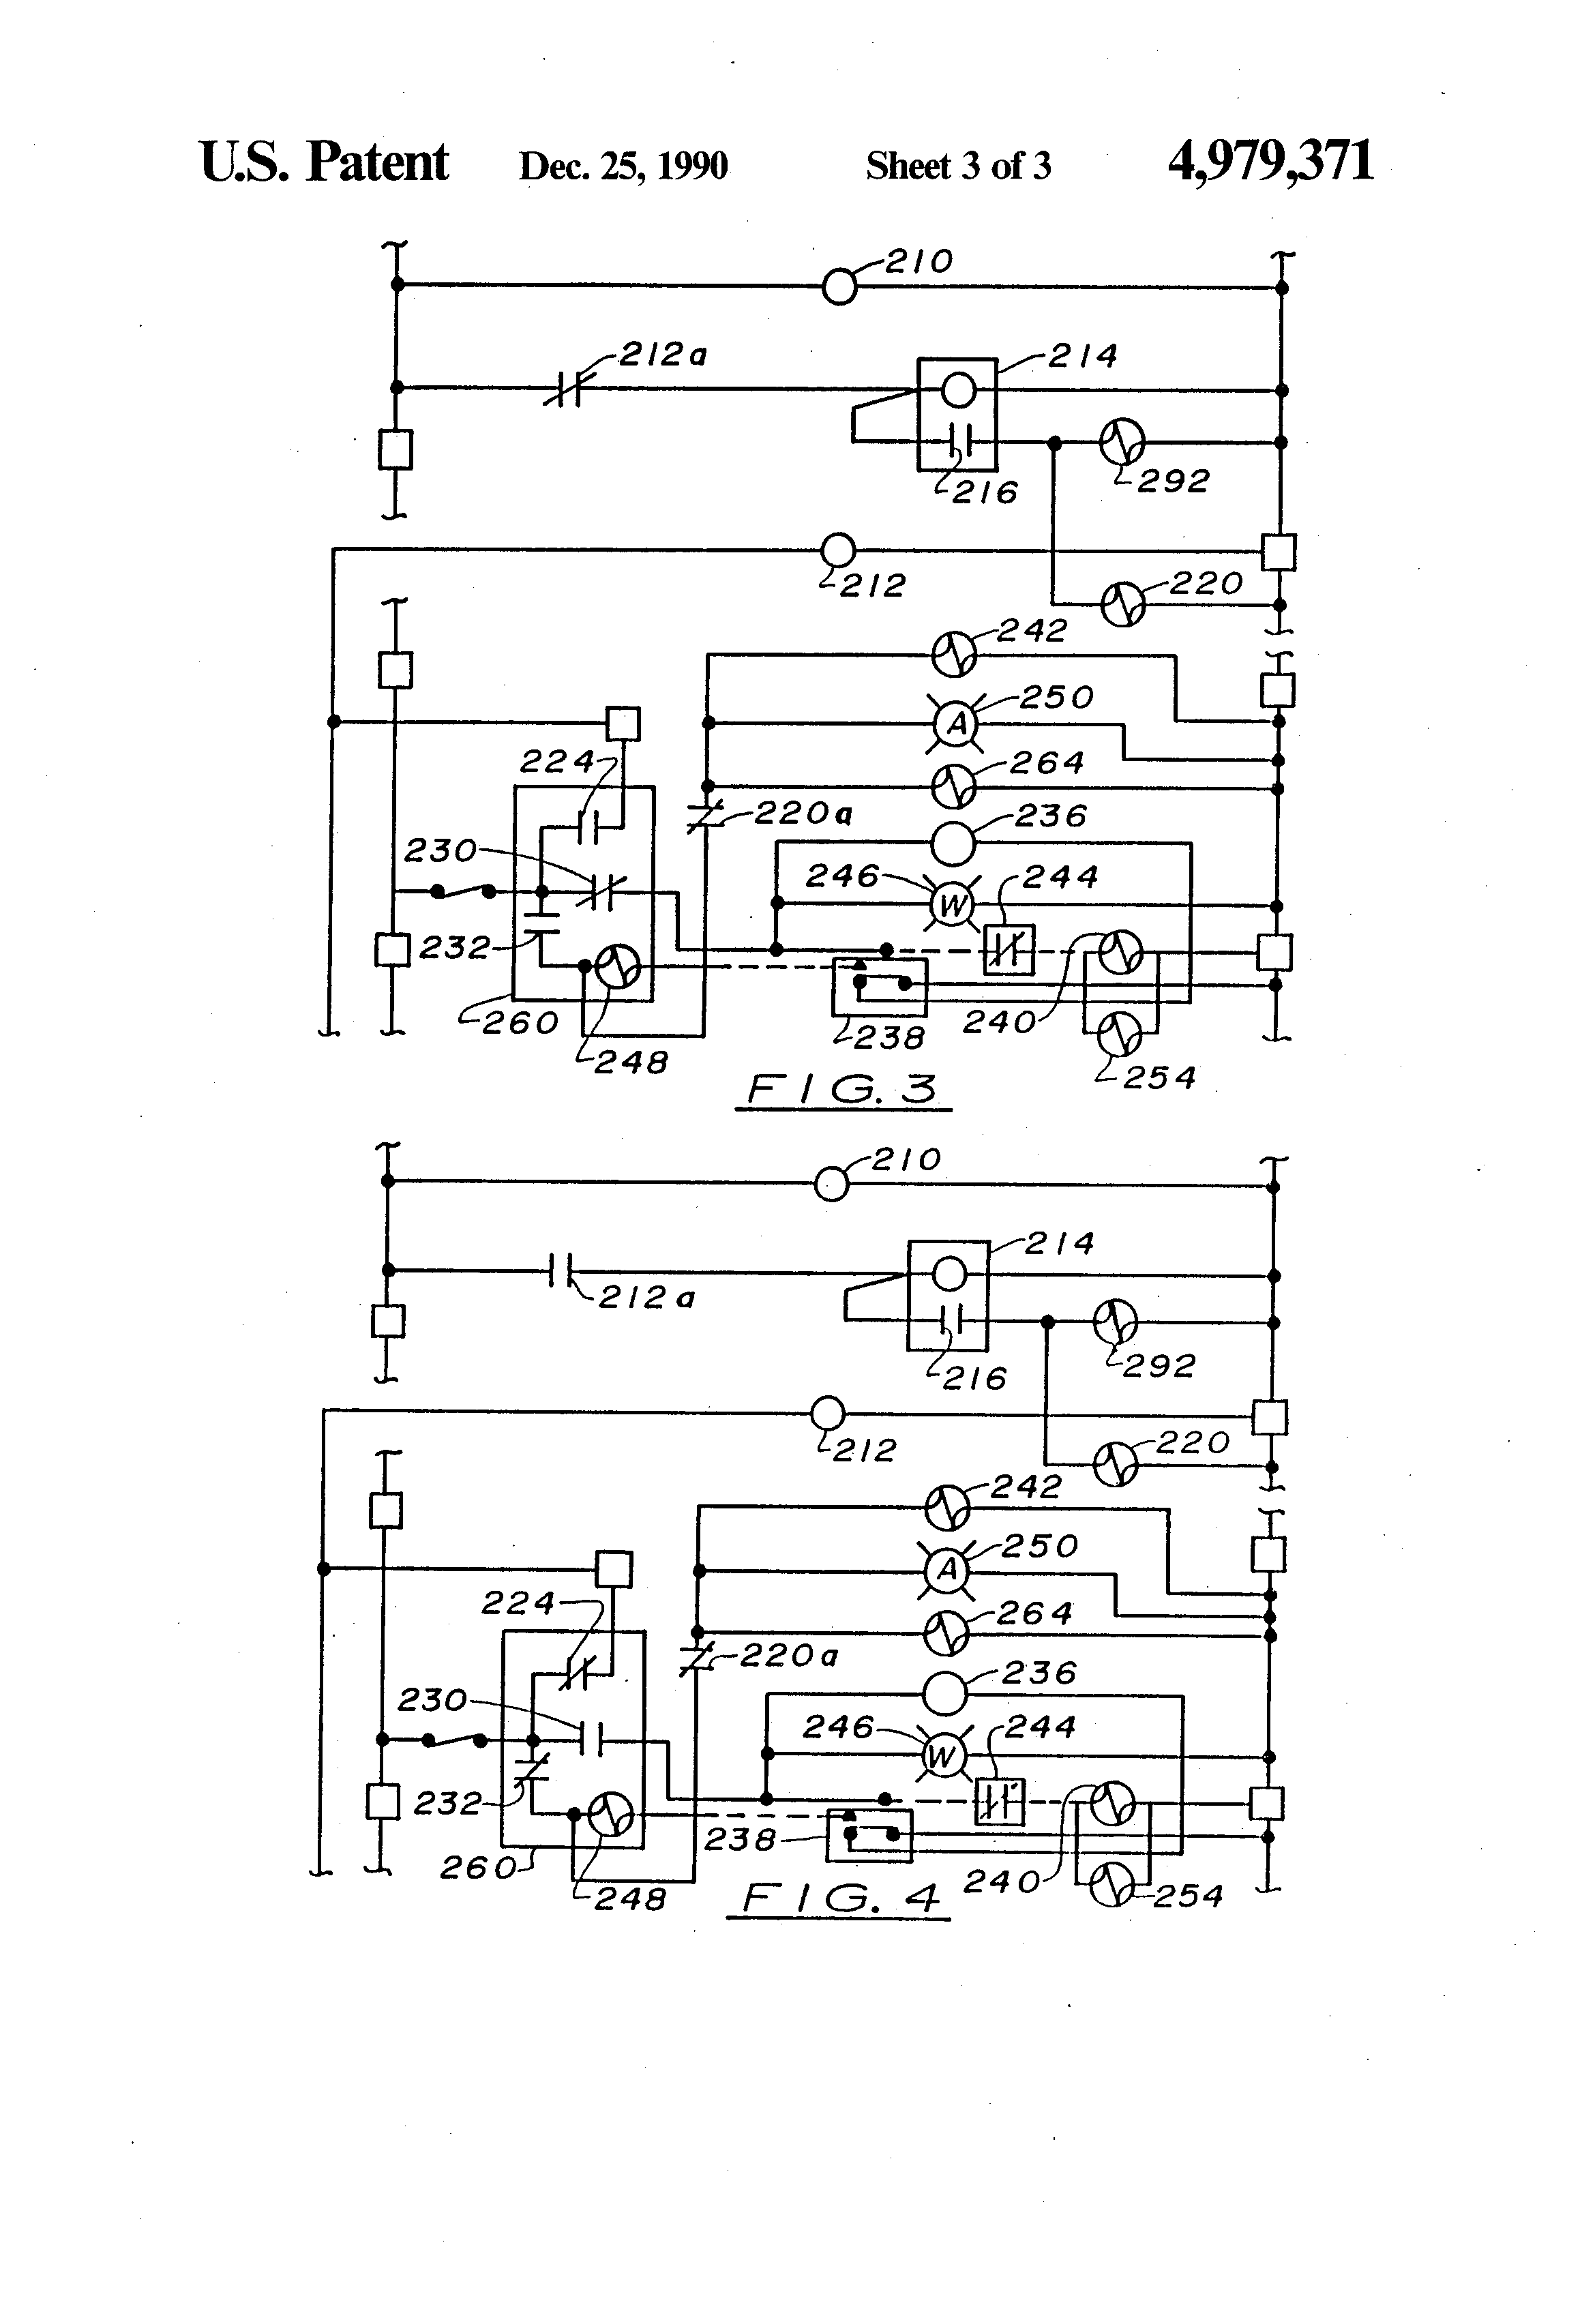 diagram of evaporators in refrigeration system